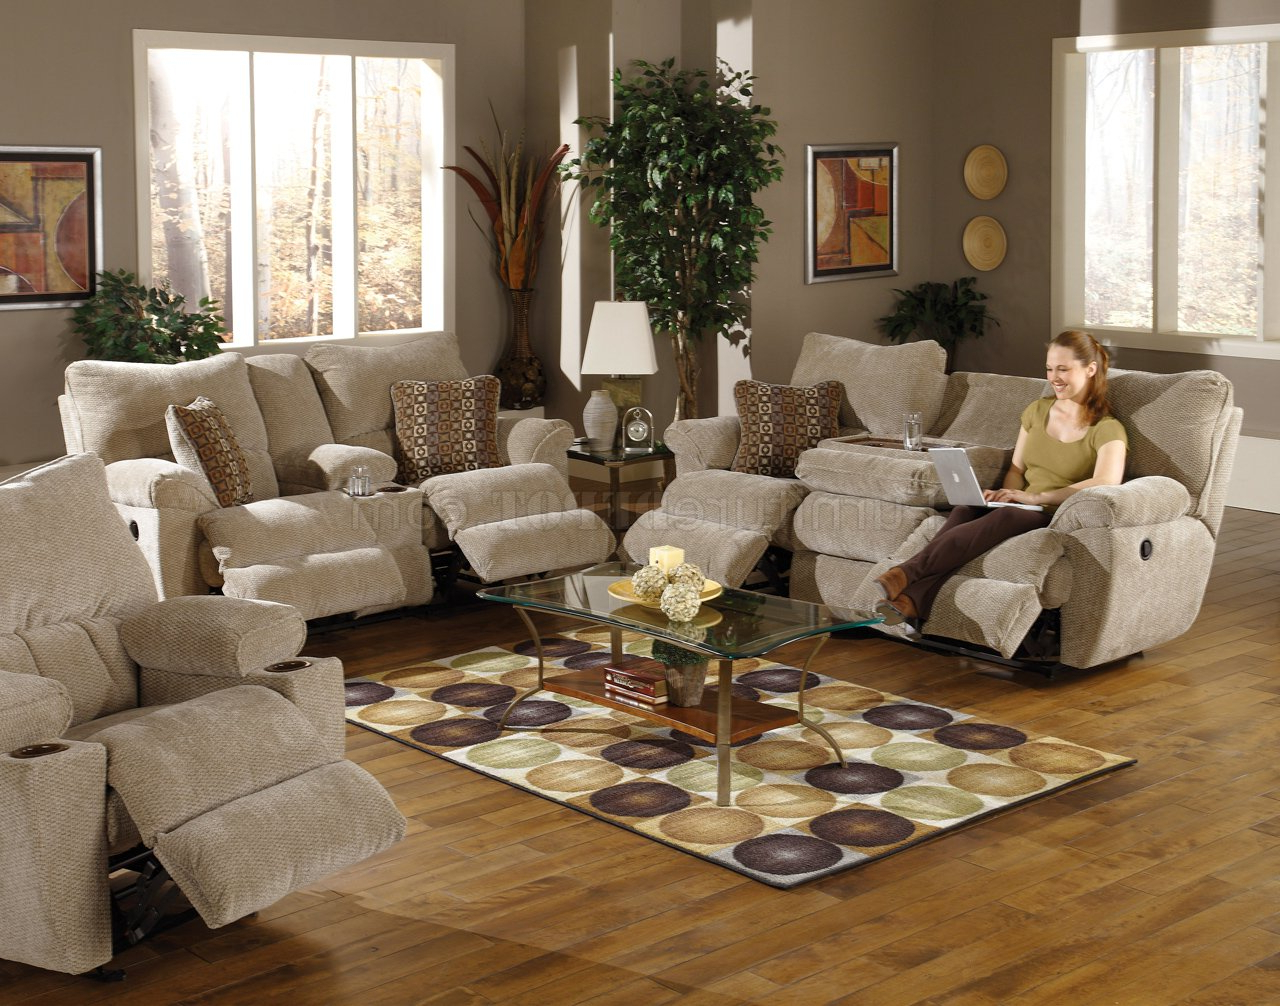 2018 Sofa Loveseat And Chairs Inside Sable/earth Fabric Madison Reclining Sofa & Loveseat Set (View 1 of 20)